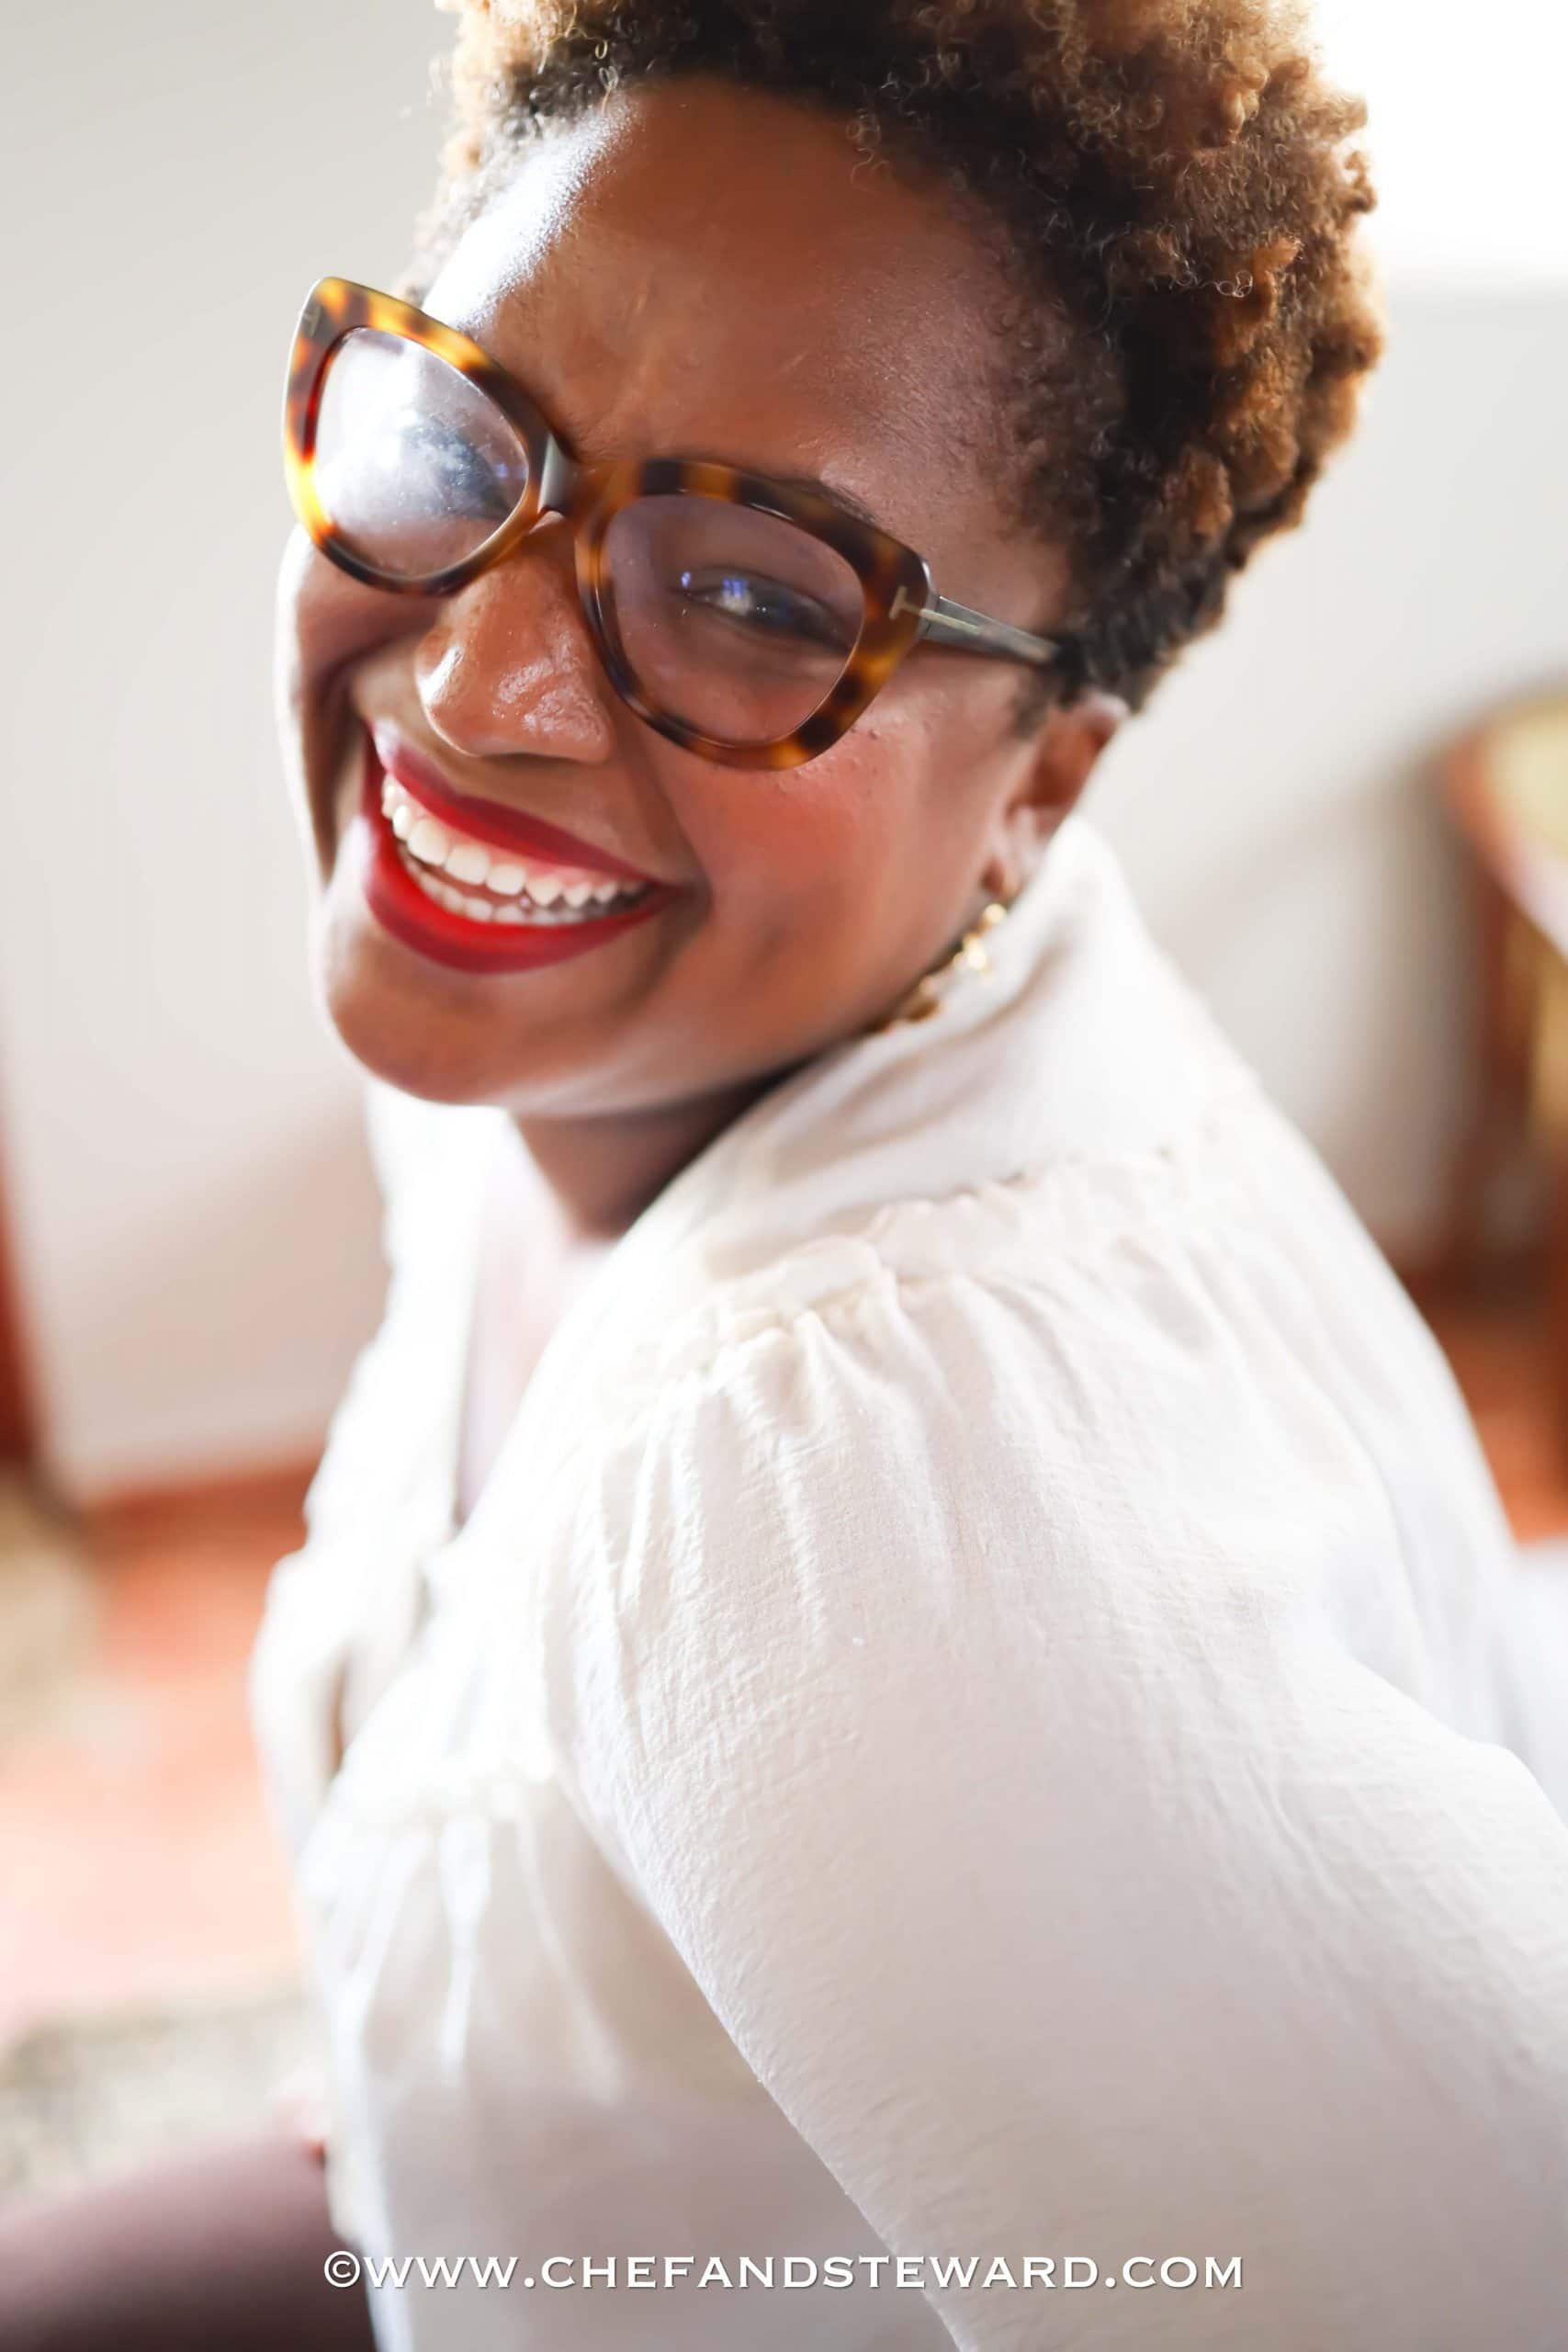 Kari Alana Morrison launches cooking videos on YouTube channel for Chef and Steward